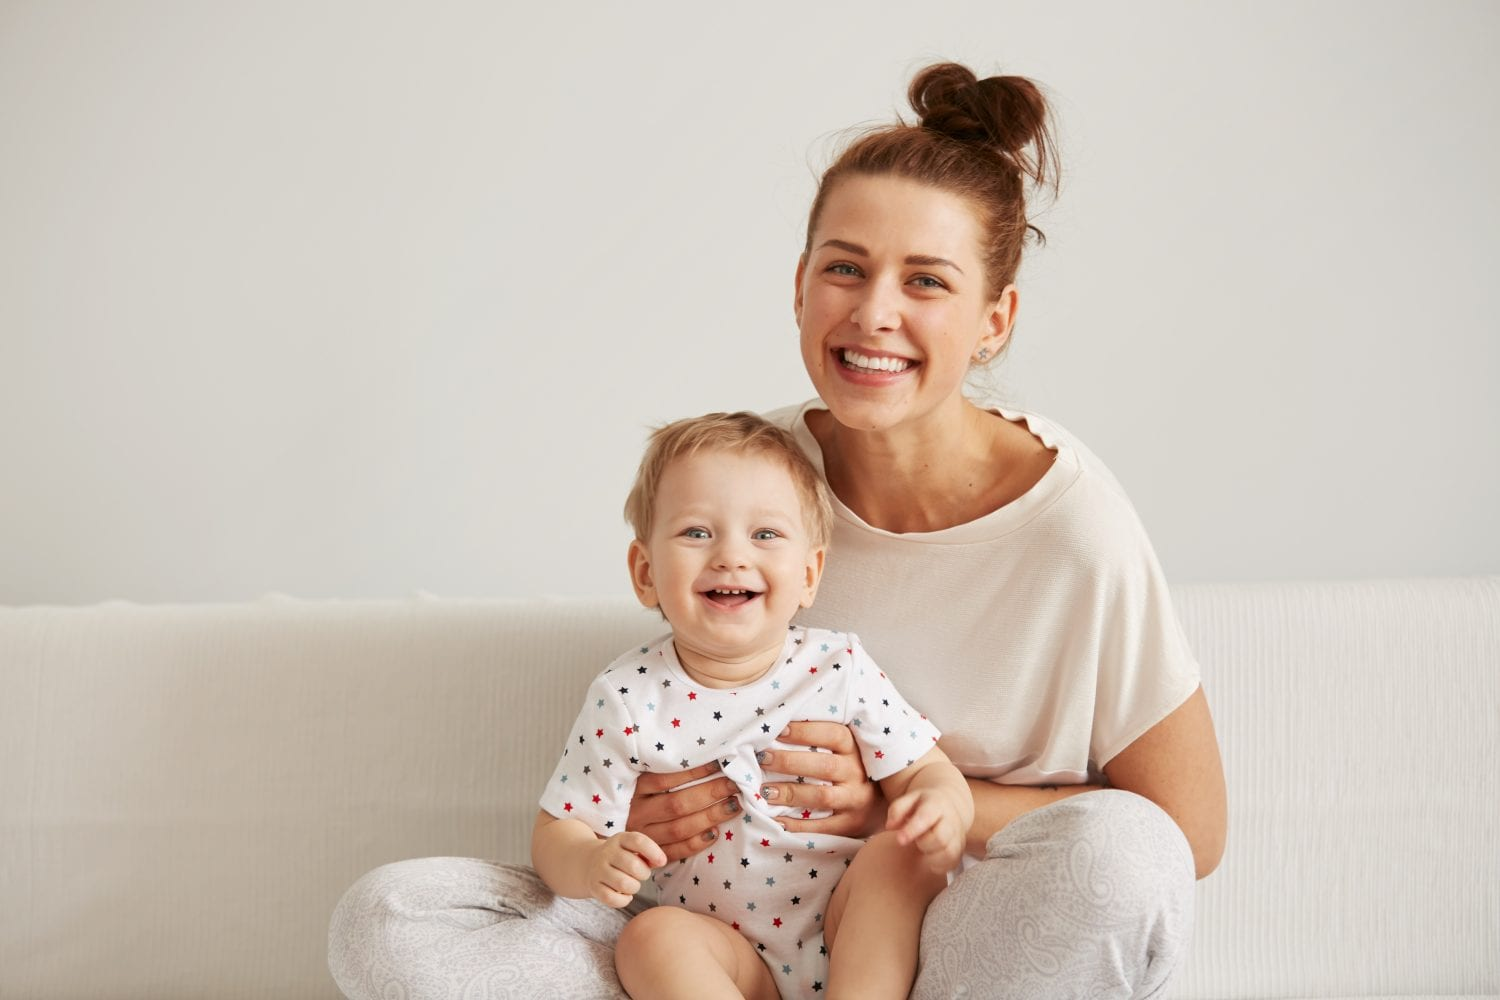 Charming brunette woman playing with her baby while sitting on a bed in her apartment at the weekend together, lazy morning, warm and cozy scene. Selective focus